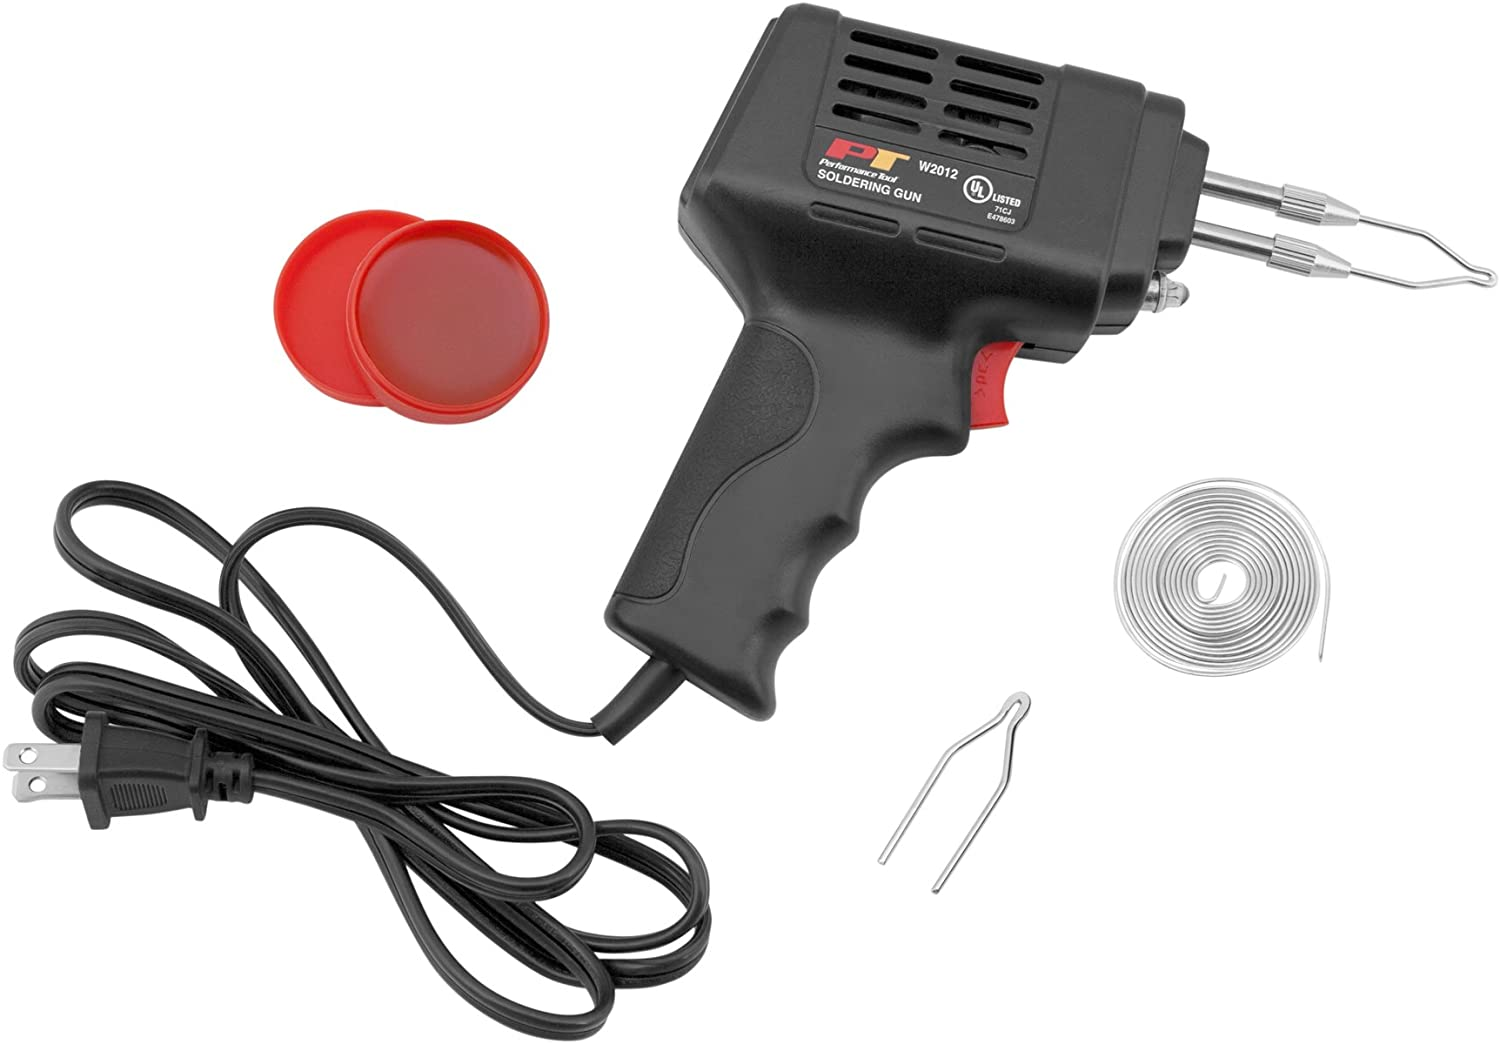 Performance Tool W2012 Universal Kit Price reduction Soldering Gun Special Campaign